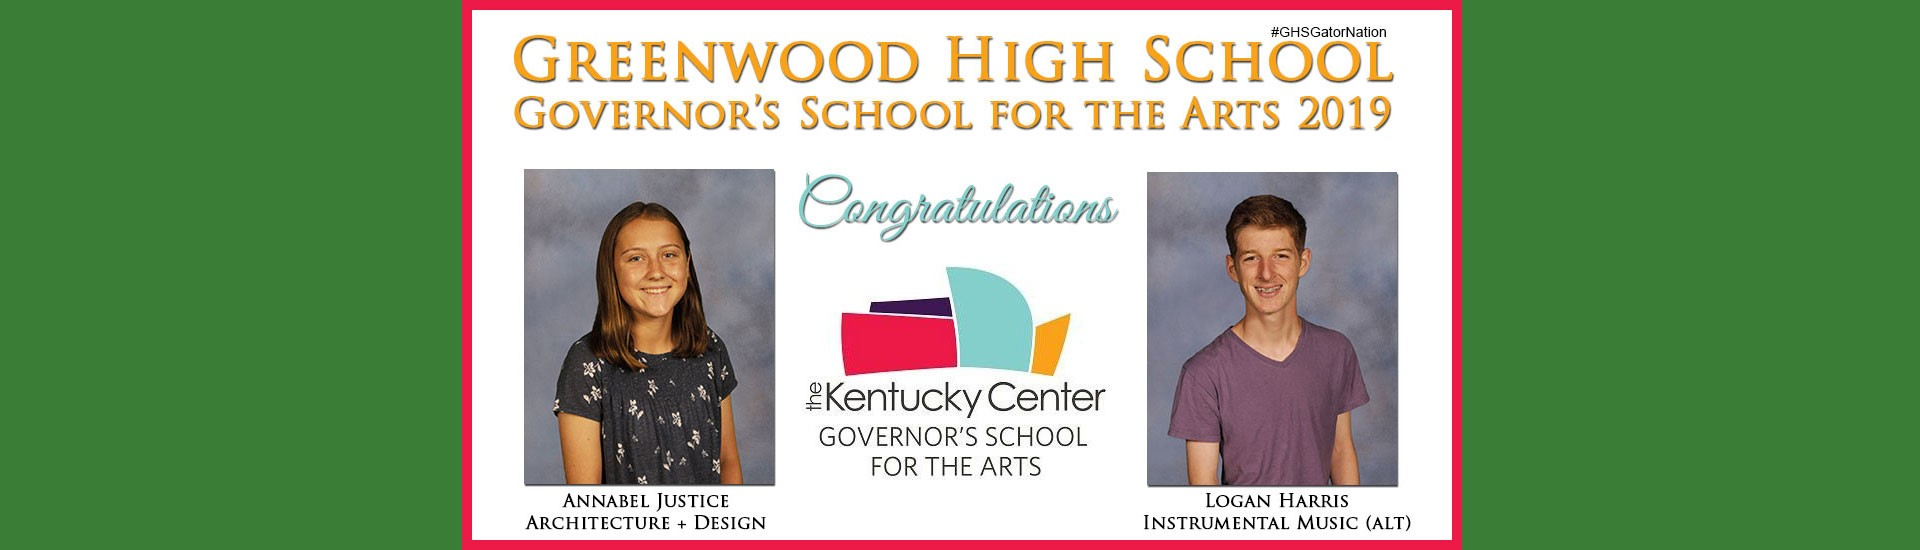 Governor's Scholar for the Arts 2019